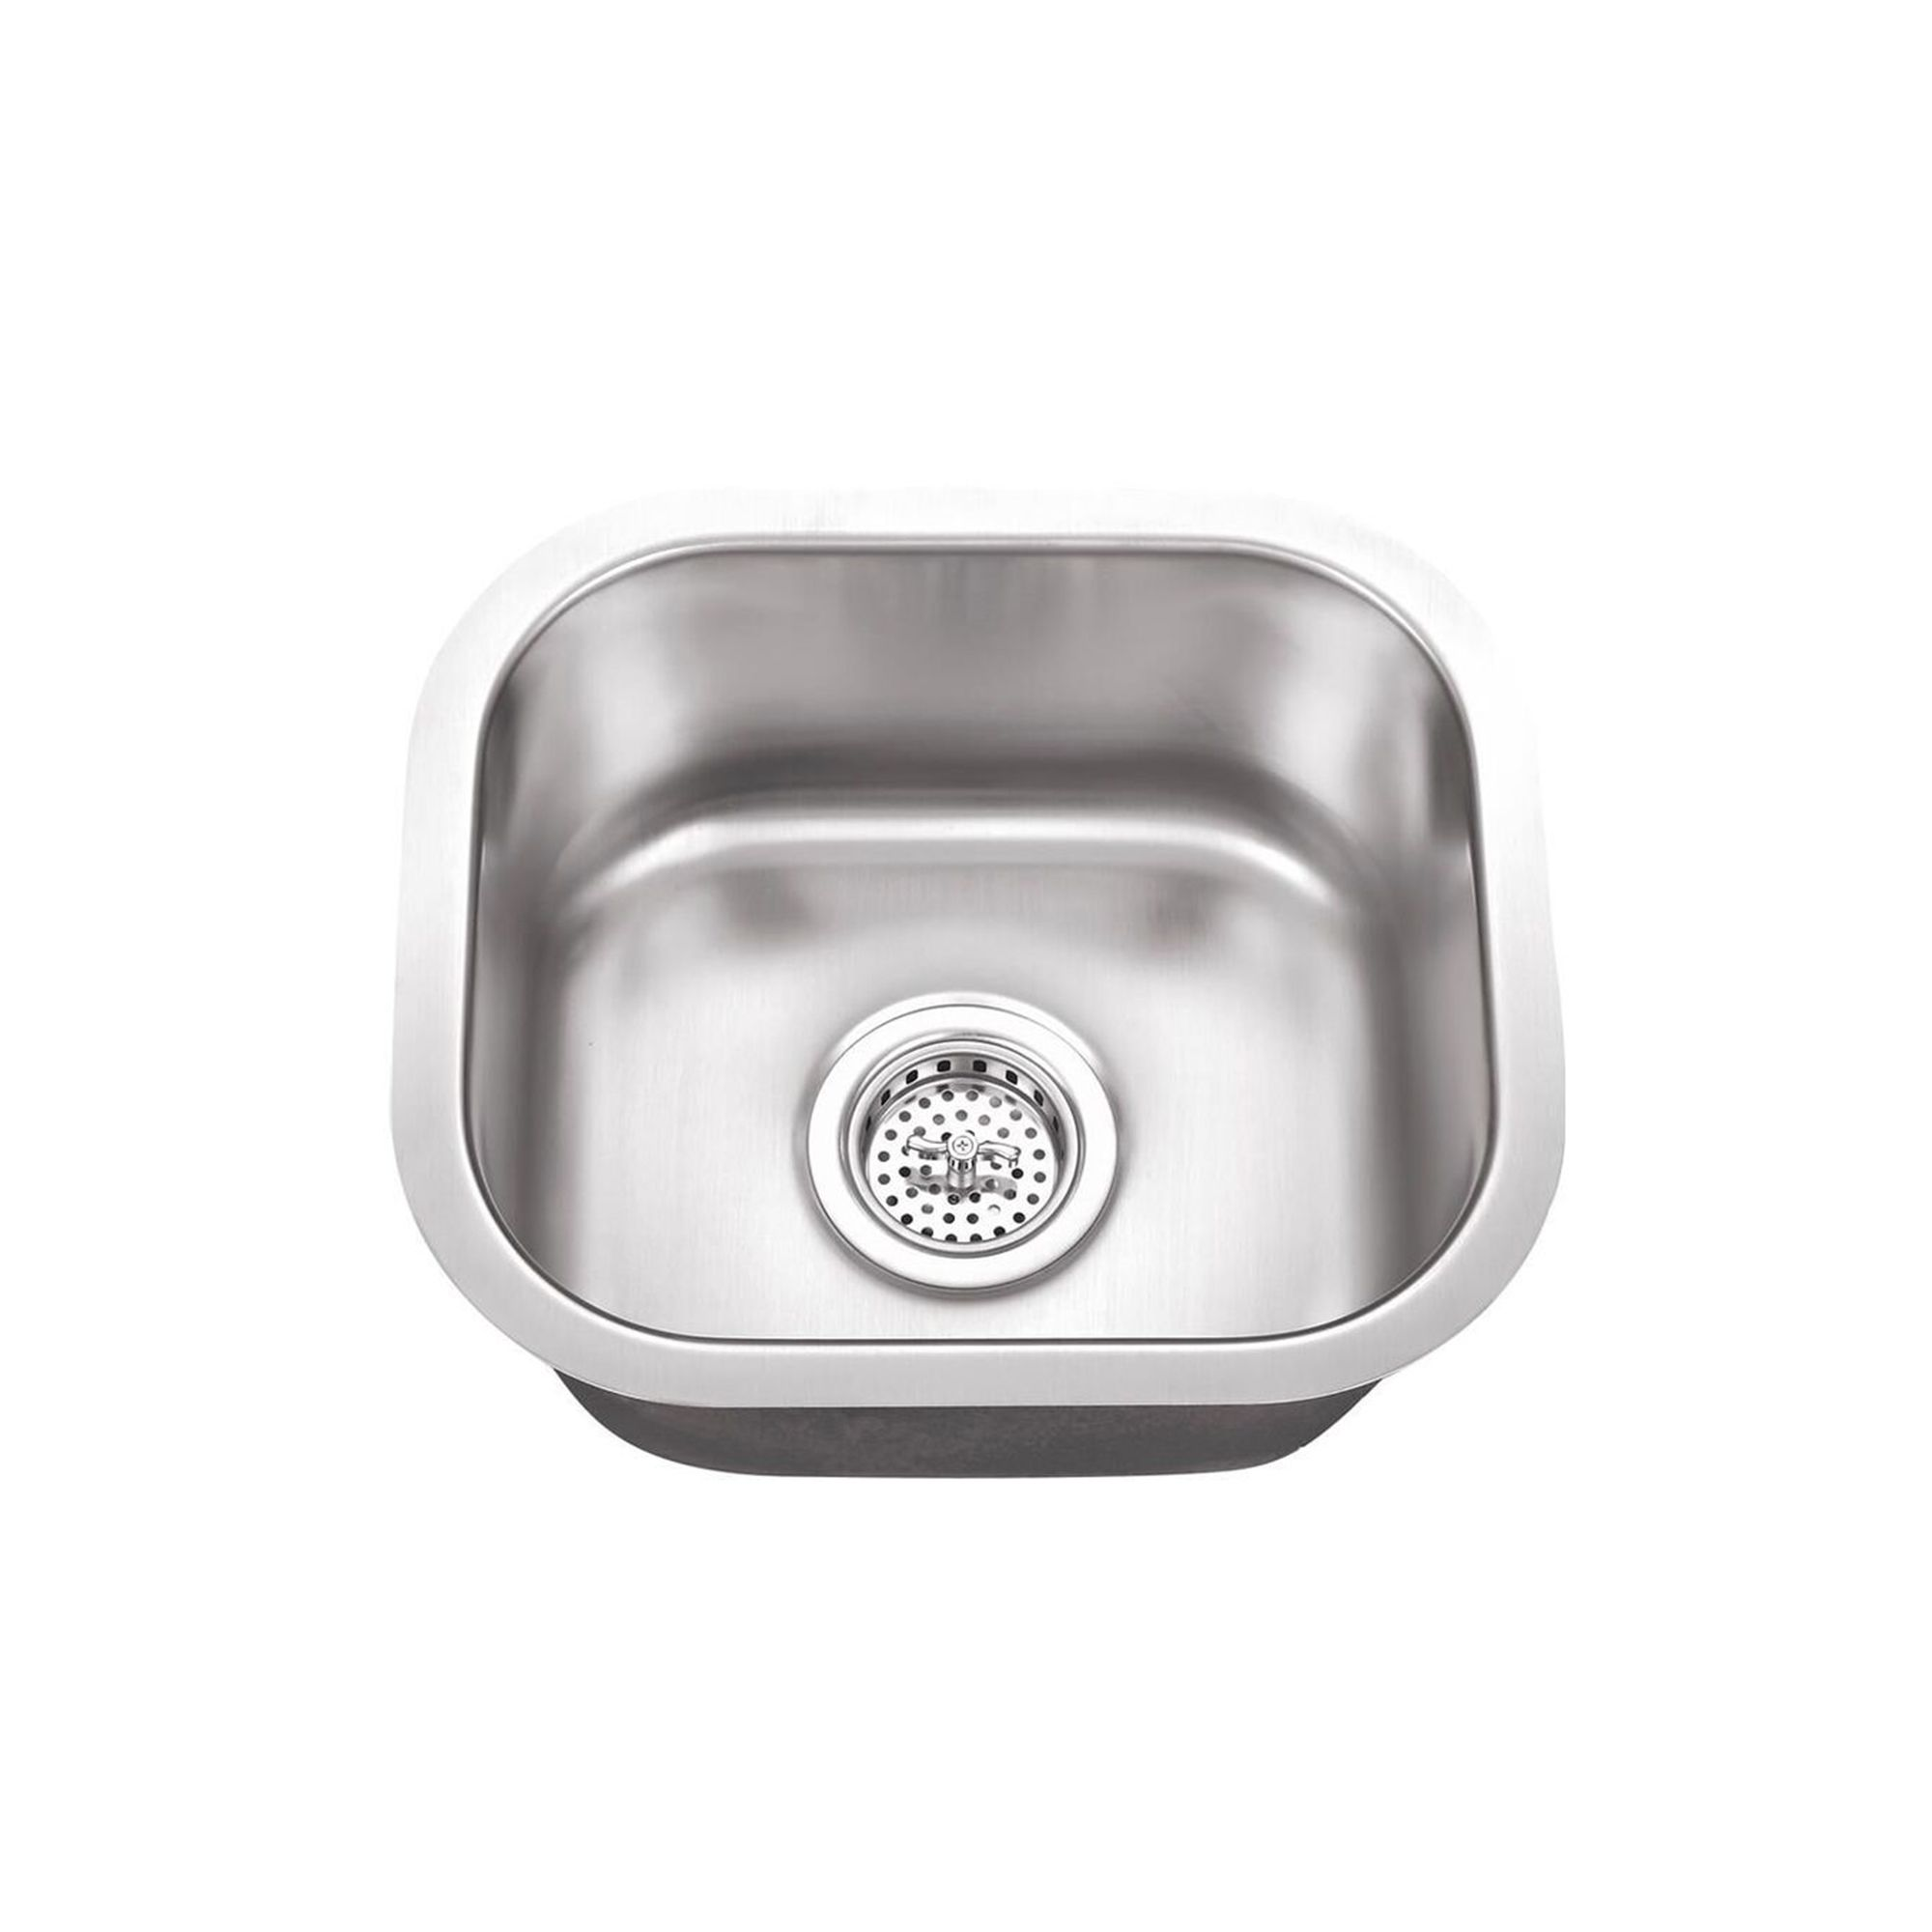 Cahaba Premium Undermount 14 1 2 In X 13 In Single Bowl Small Stainless Steel Bar Sink Stainless Steel Bar Double Bowl Kitchen Sink Bar Sink